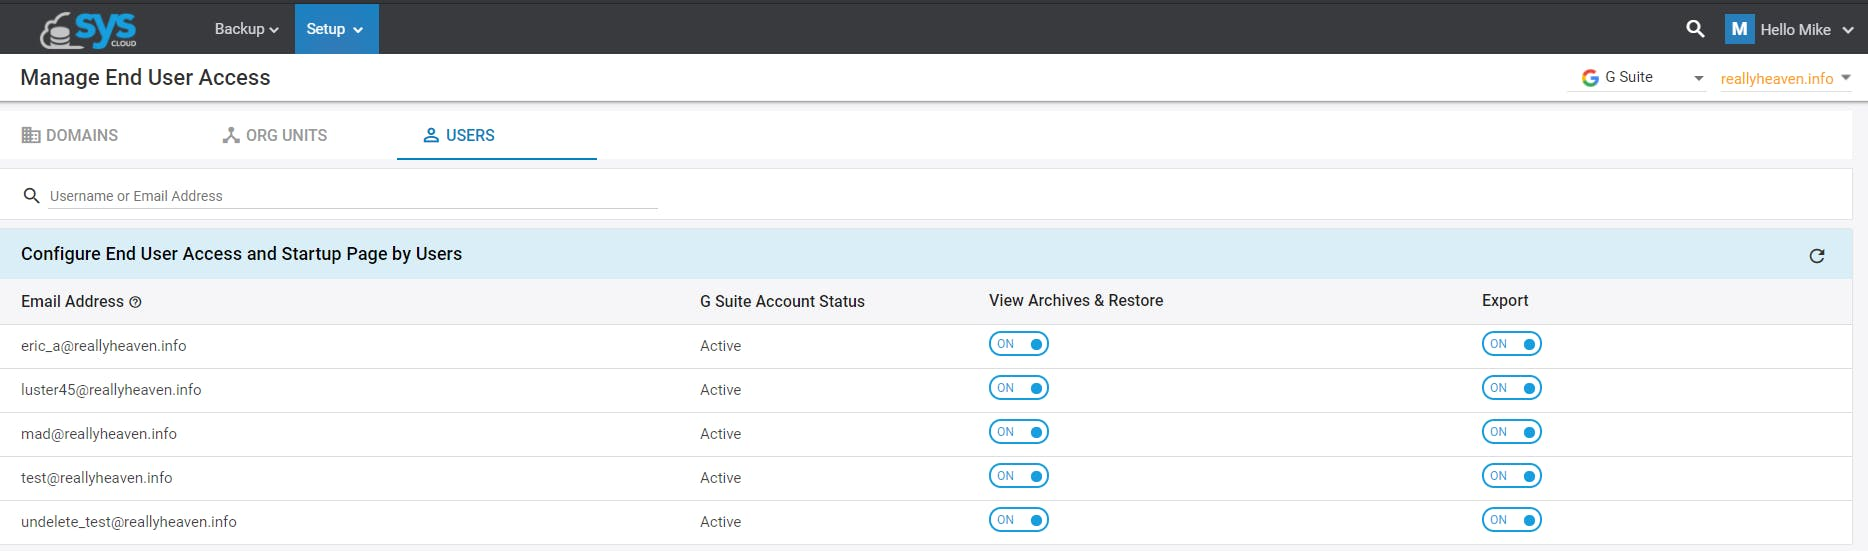 manage end user access